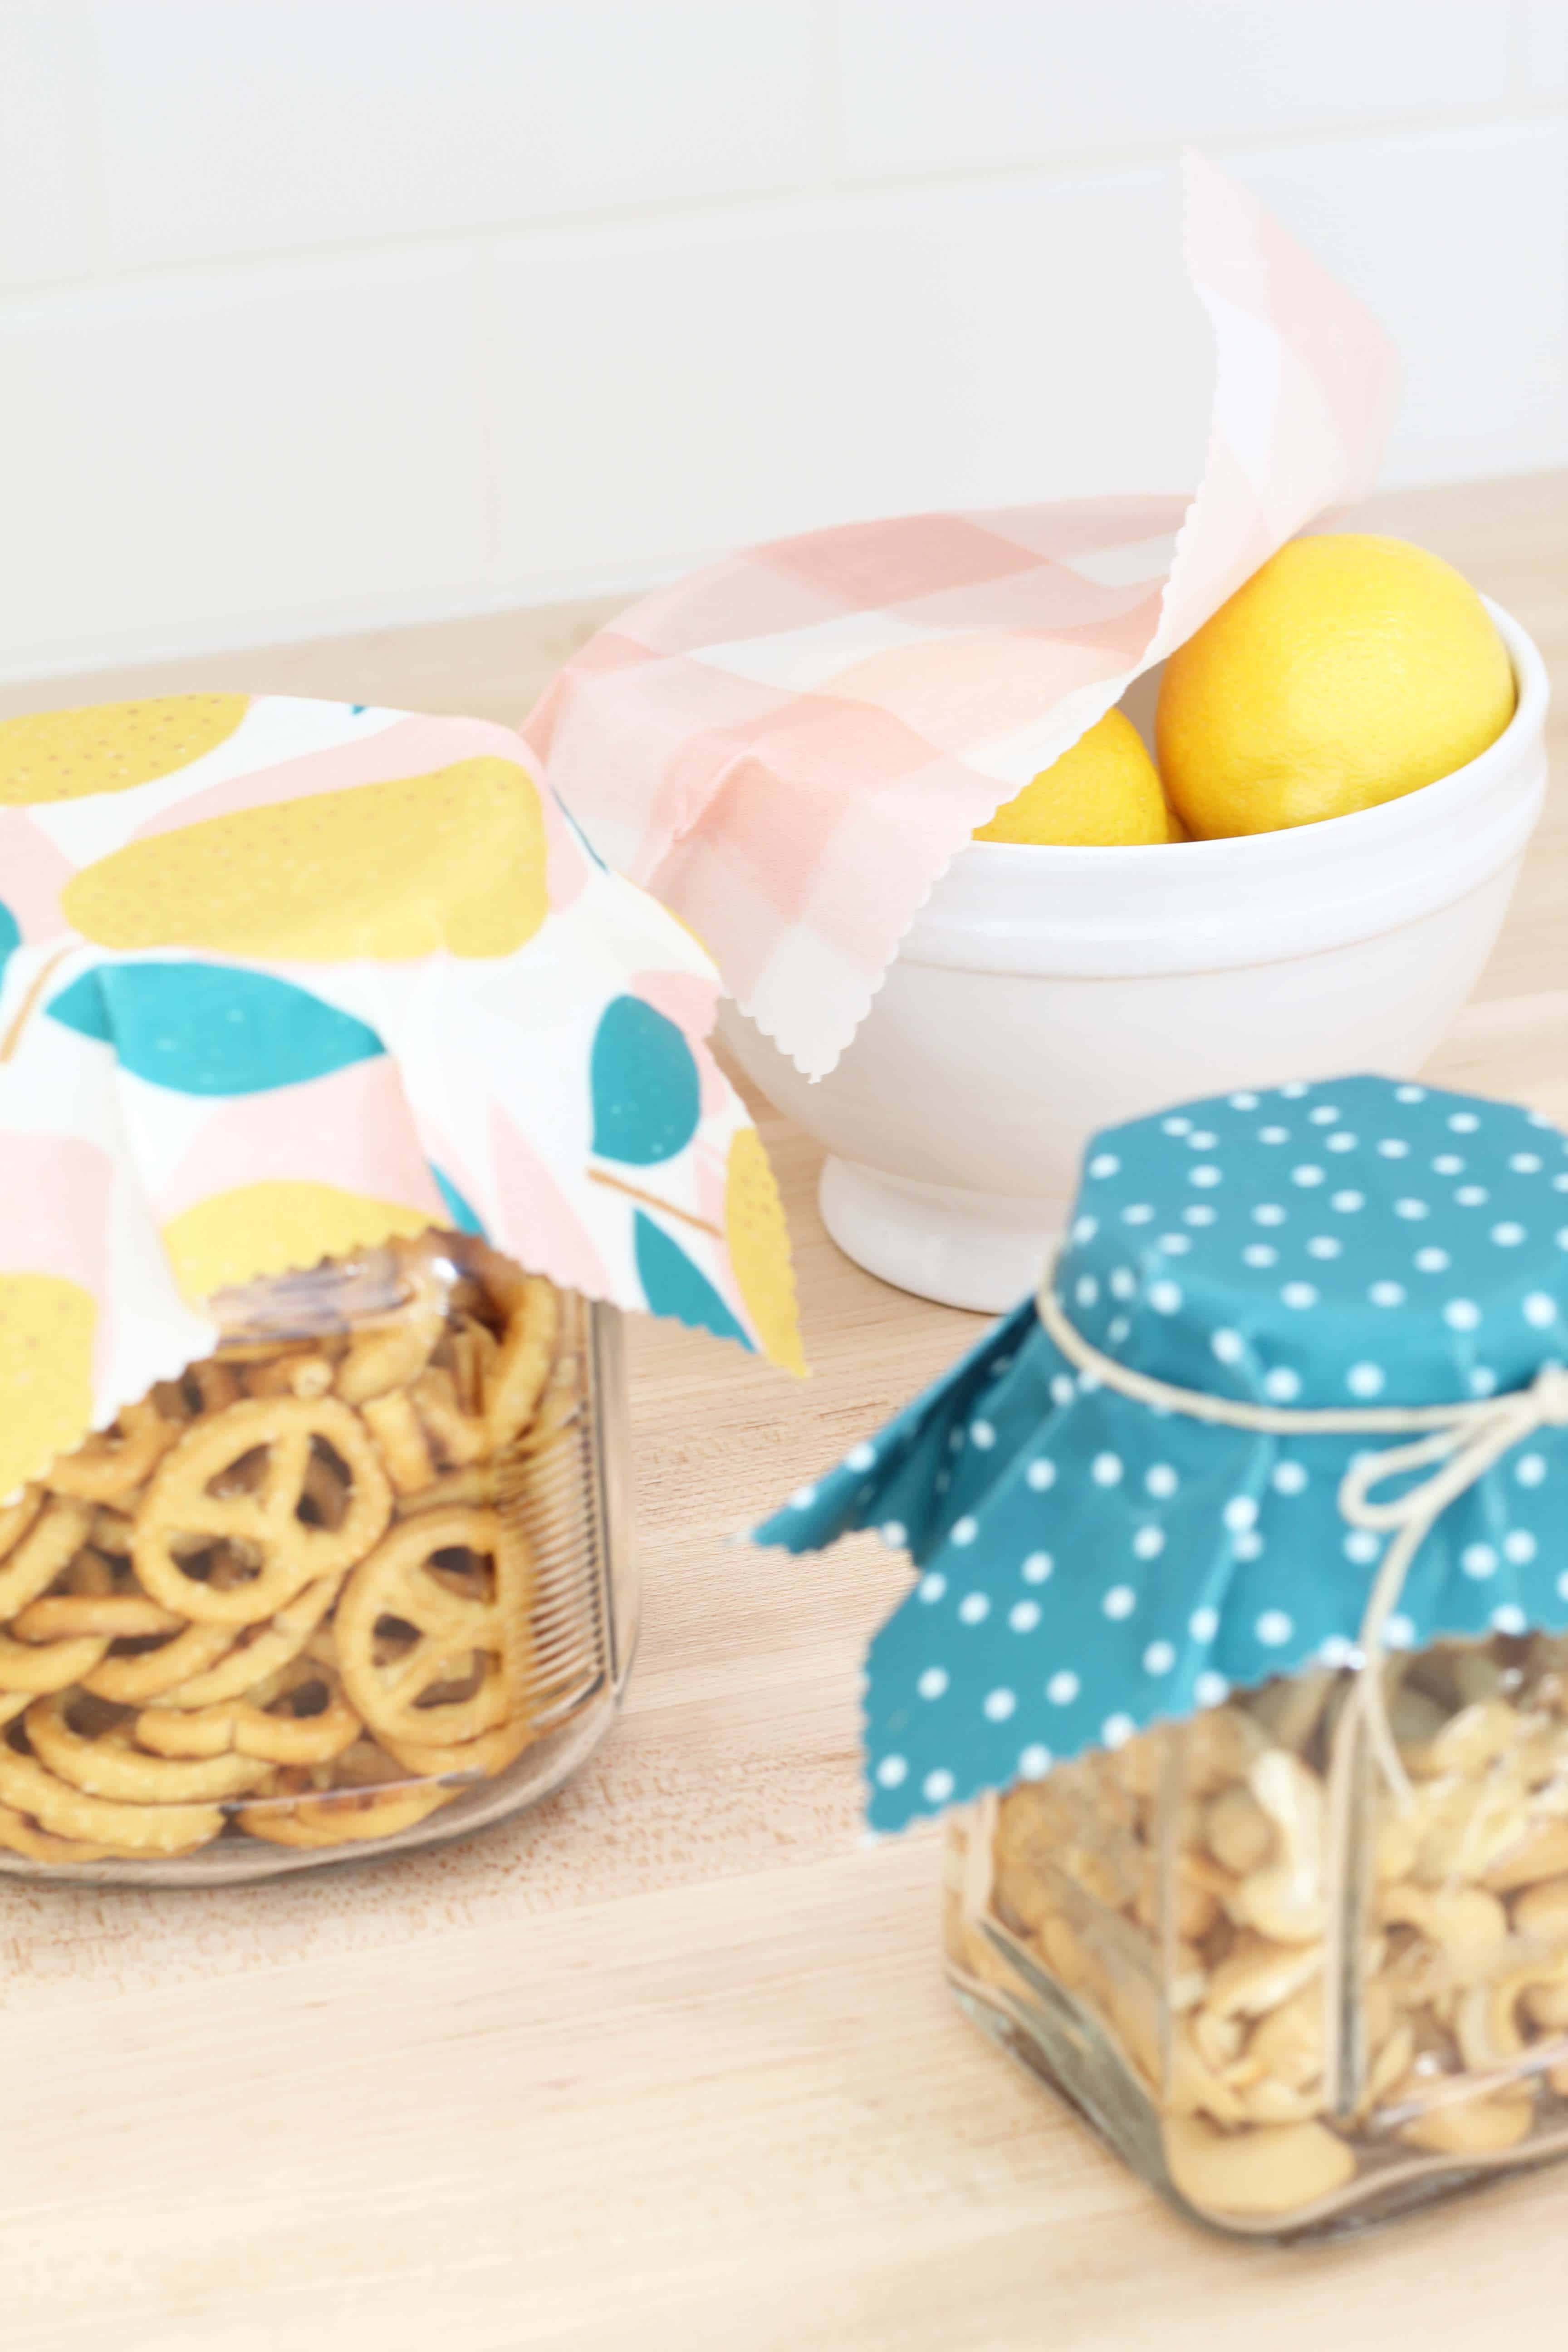 beeswax wrap in lemon print covering glass jars of food